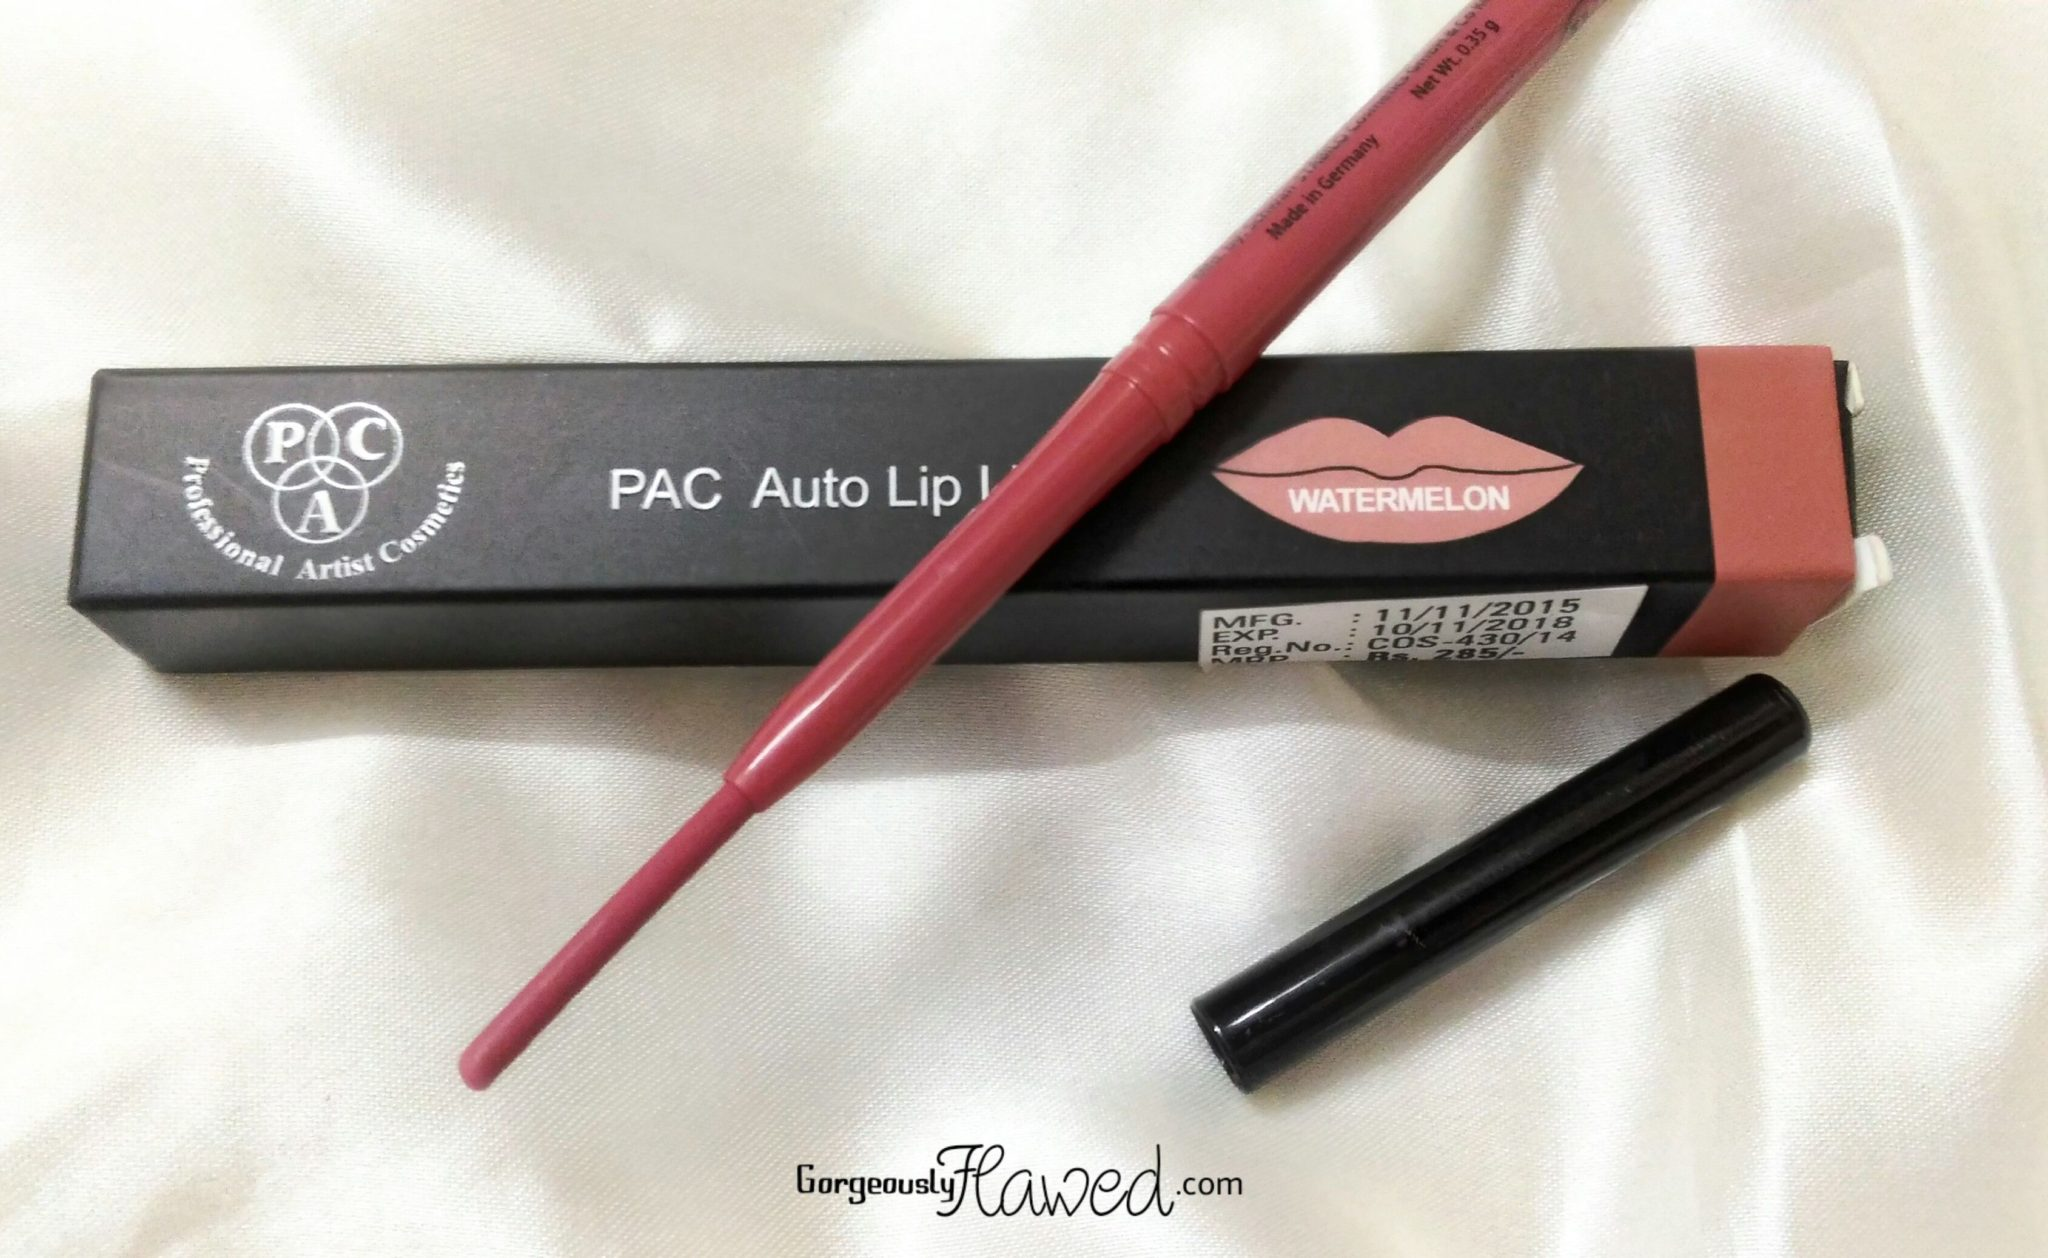 PAC Auto Lip Liner Watermelon